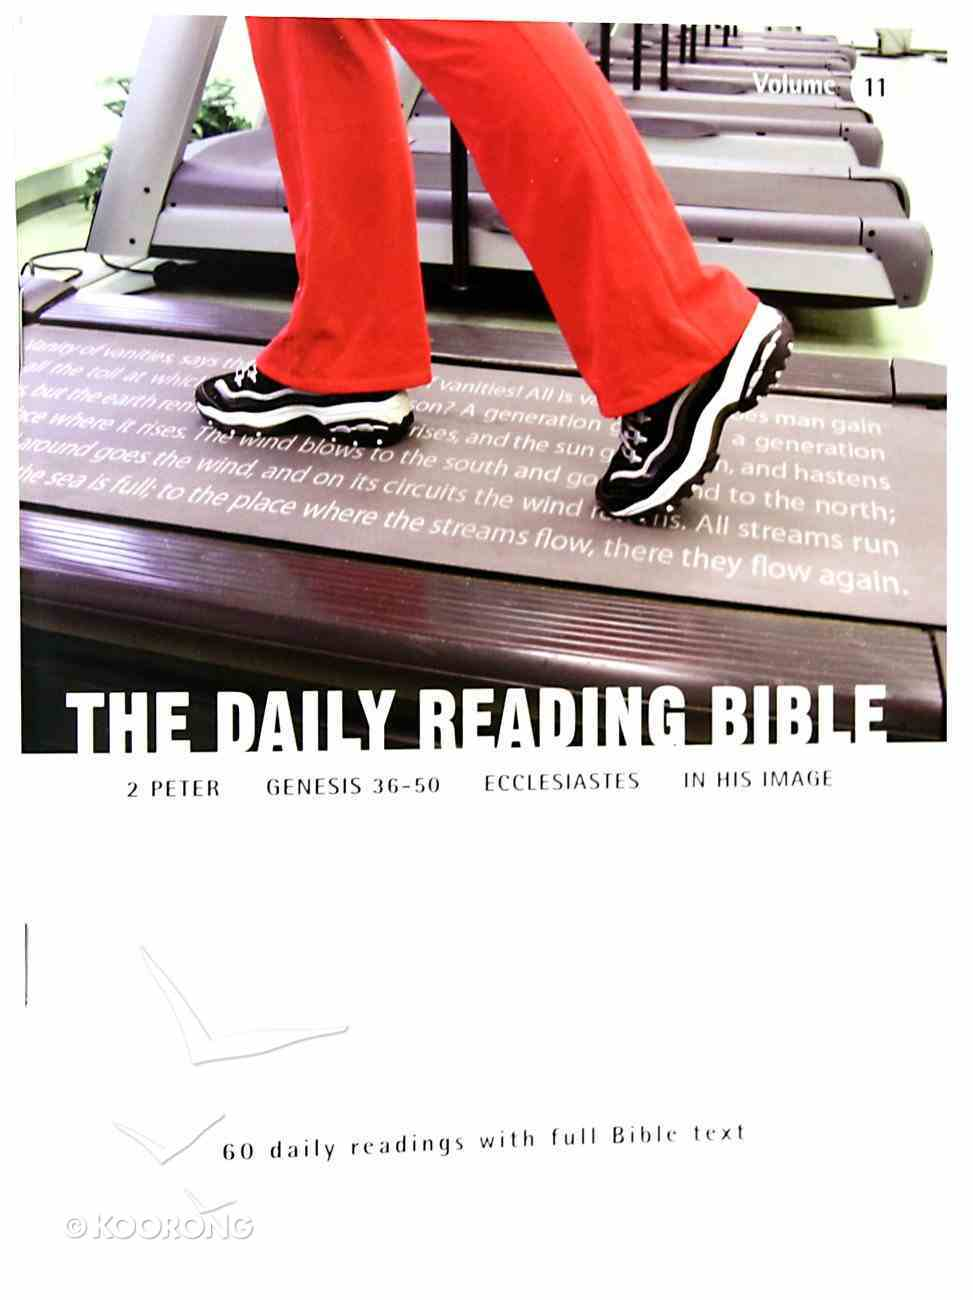 2 Peter, Genesis 36-50, Ecclesiastes, in His Image (#11 in Daily Reading Bible Series) Paperback